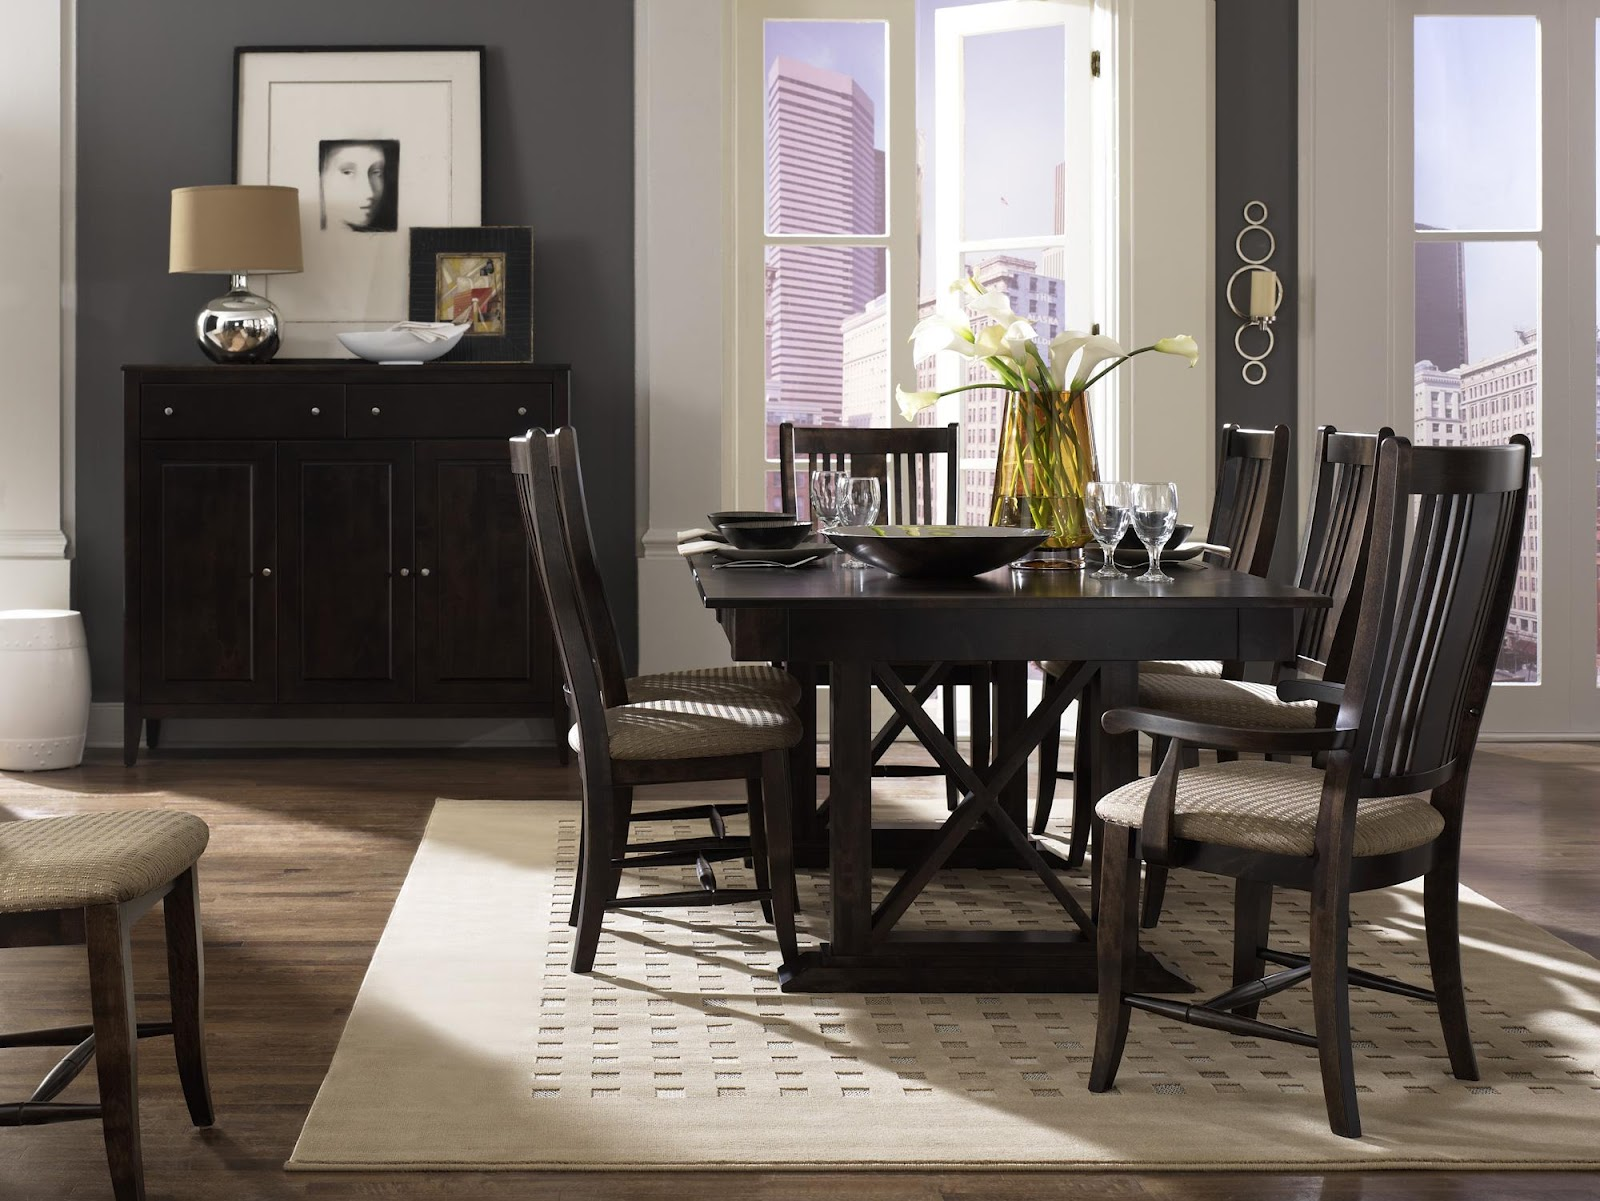 Save on dining room sets at JCPenney Shop dining sets by top brands today! FREE shipping available